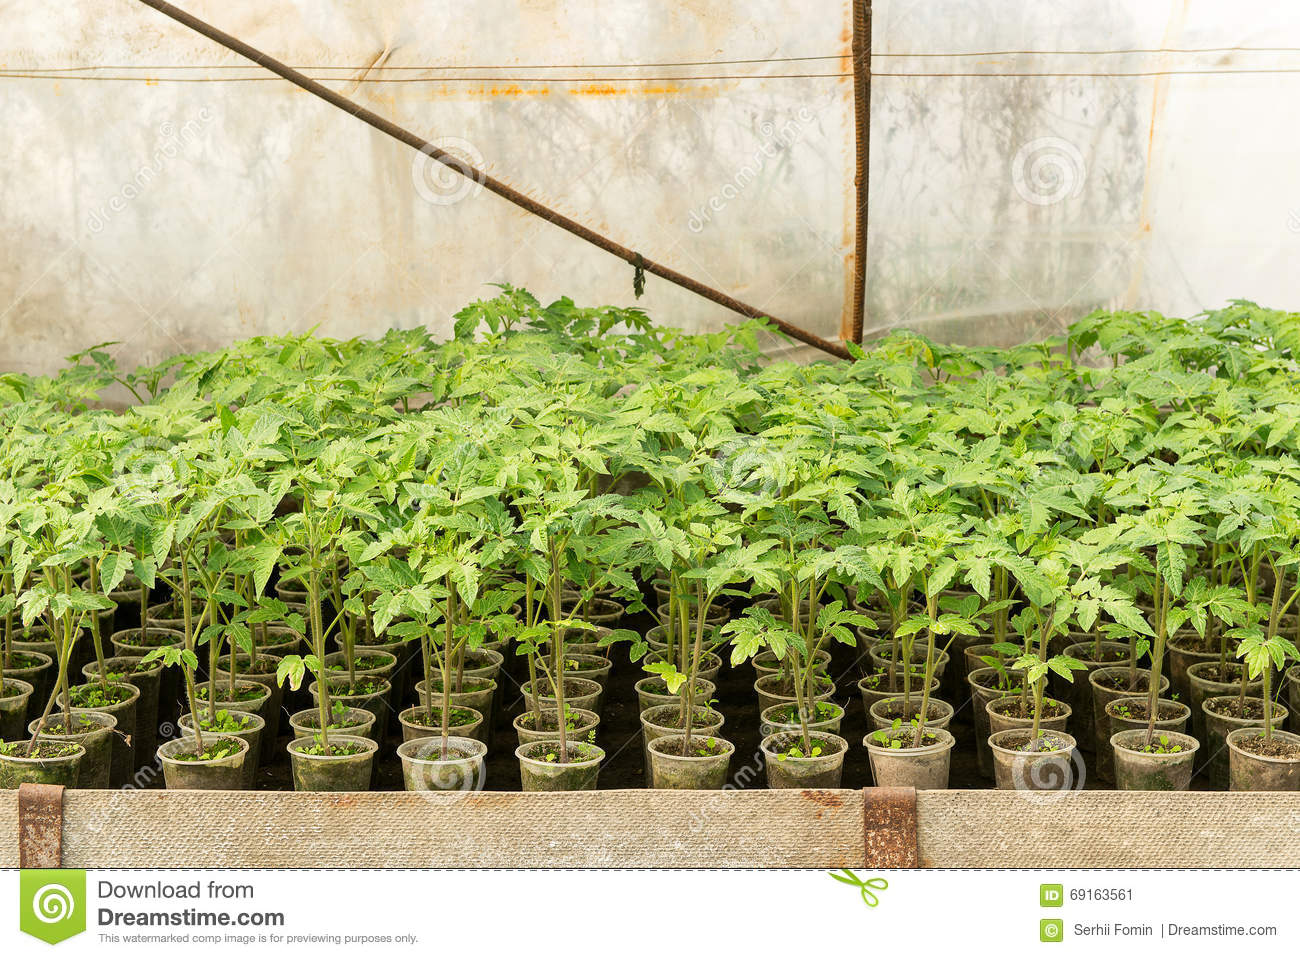 greenhouse plants, drip irrigation, greenhouse cultivation of tomatoes in agricultu